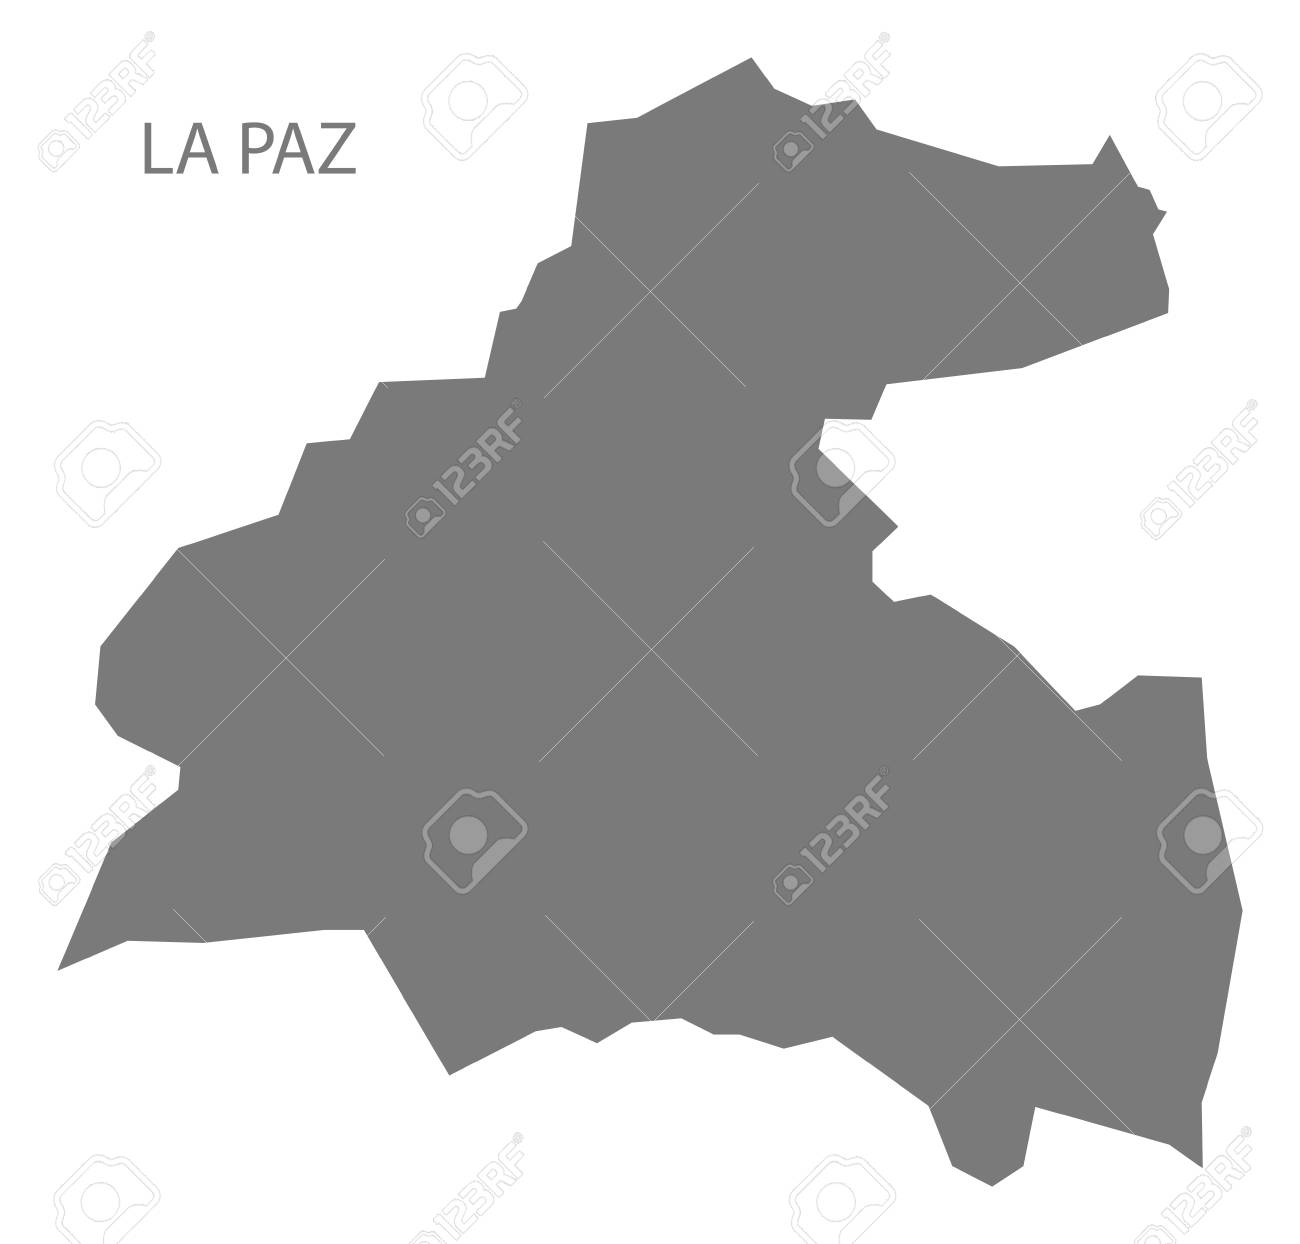 La Paz Honduras Map La Paz Honduras Map Grey Illustration Silhouette Royalty Free